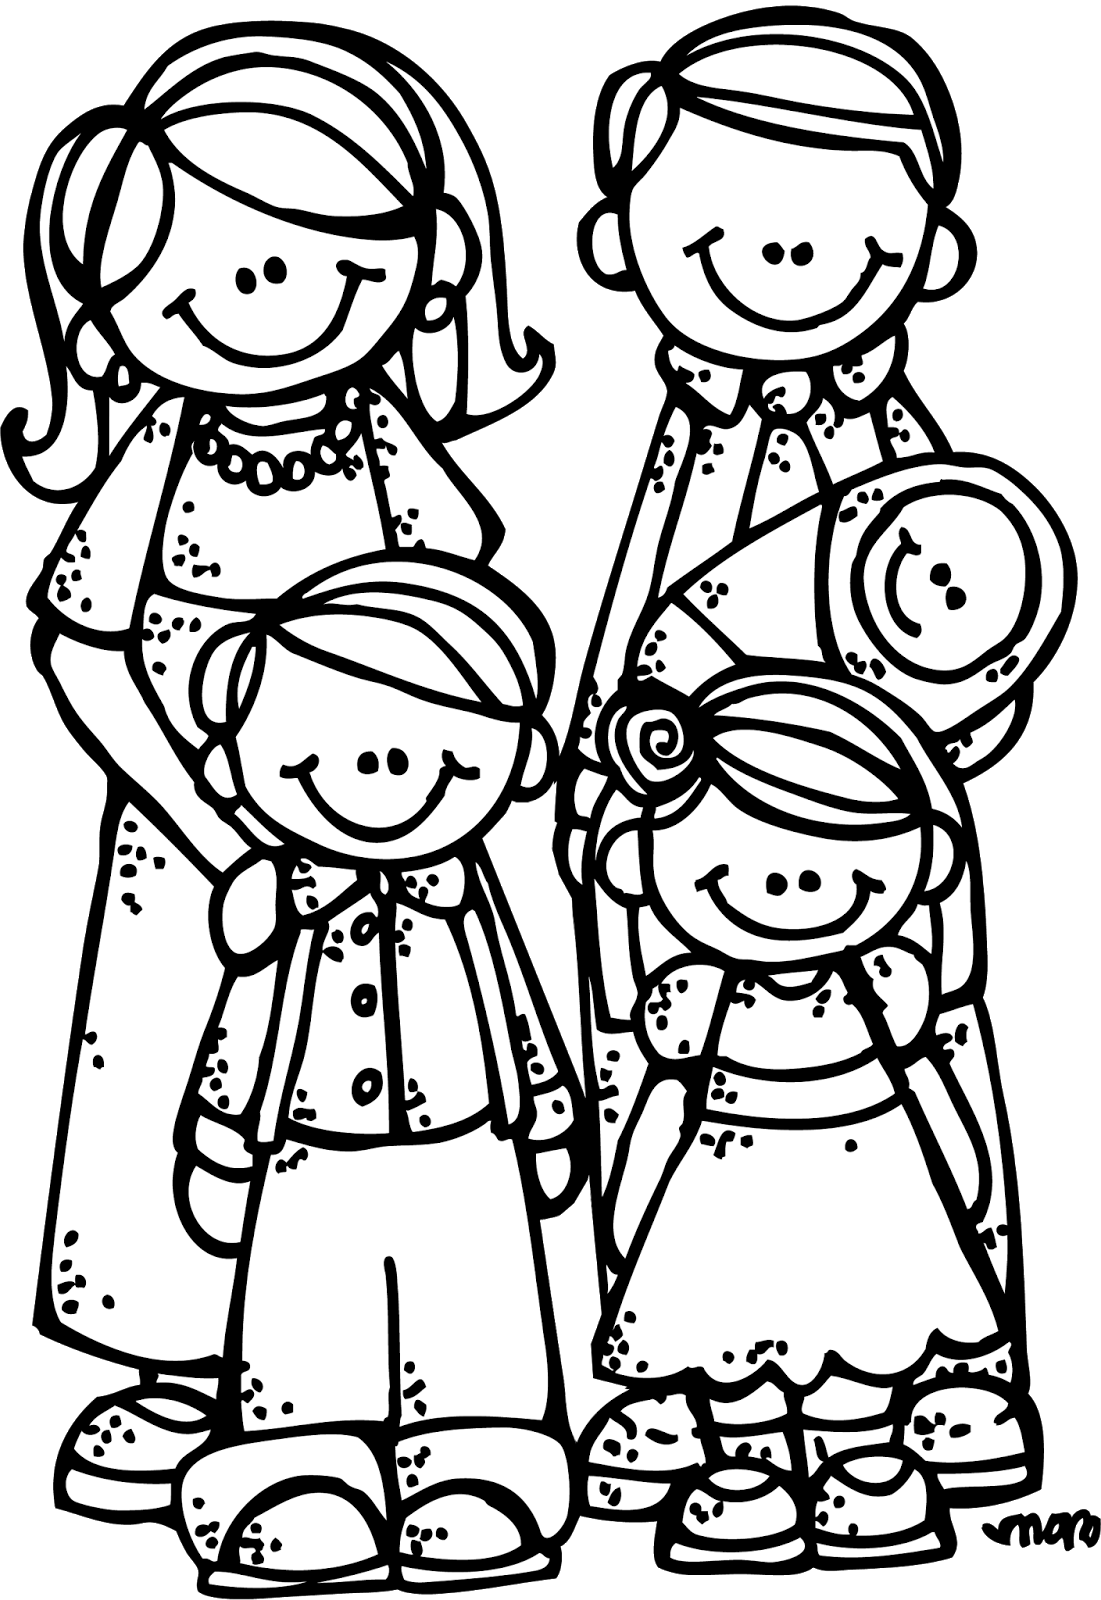 Grandparent clipart coloring. Melonheadz lds illustrating new